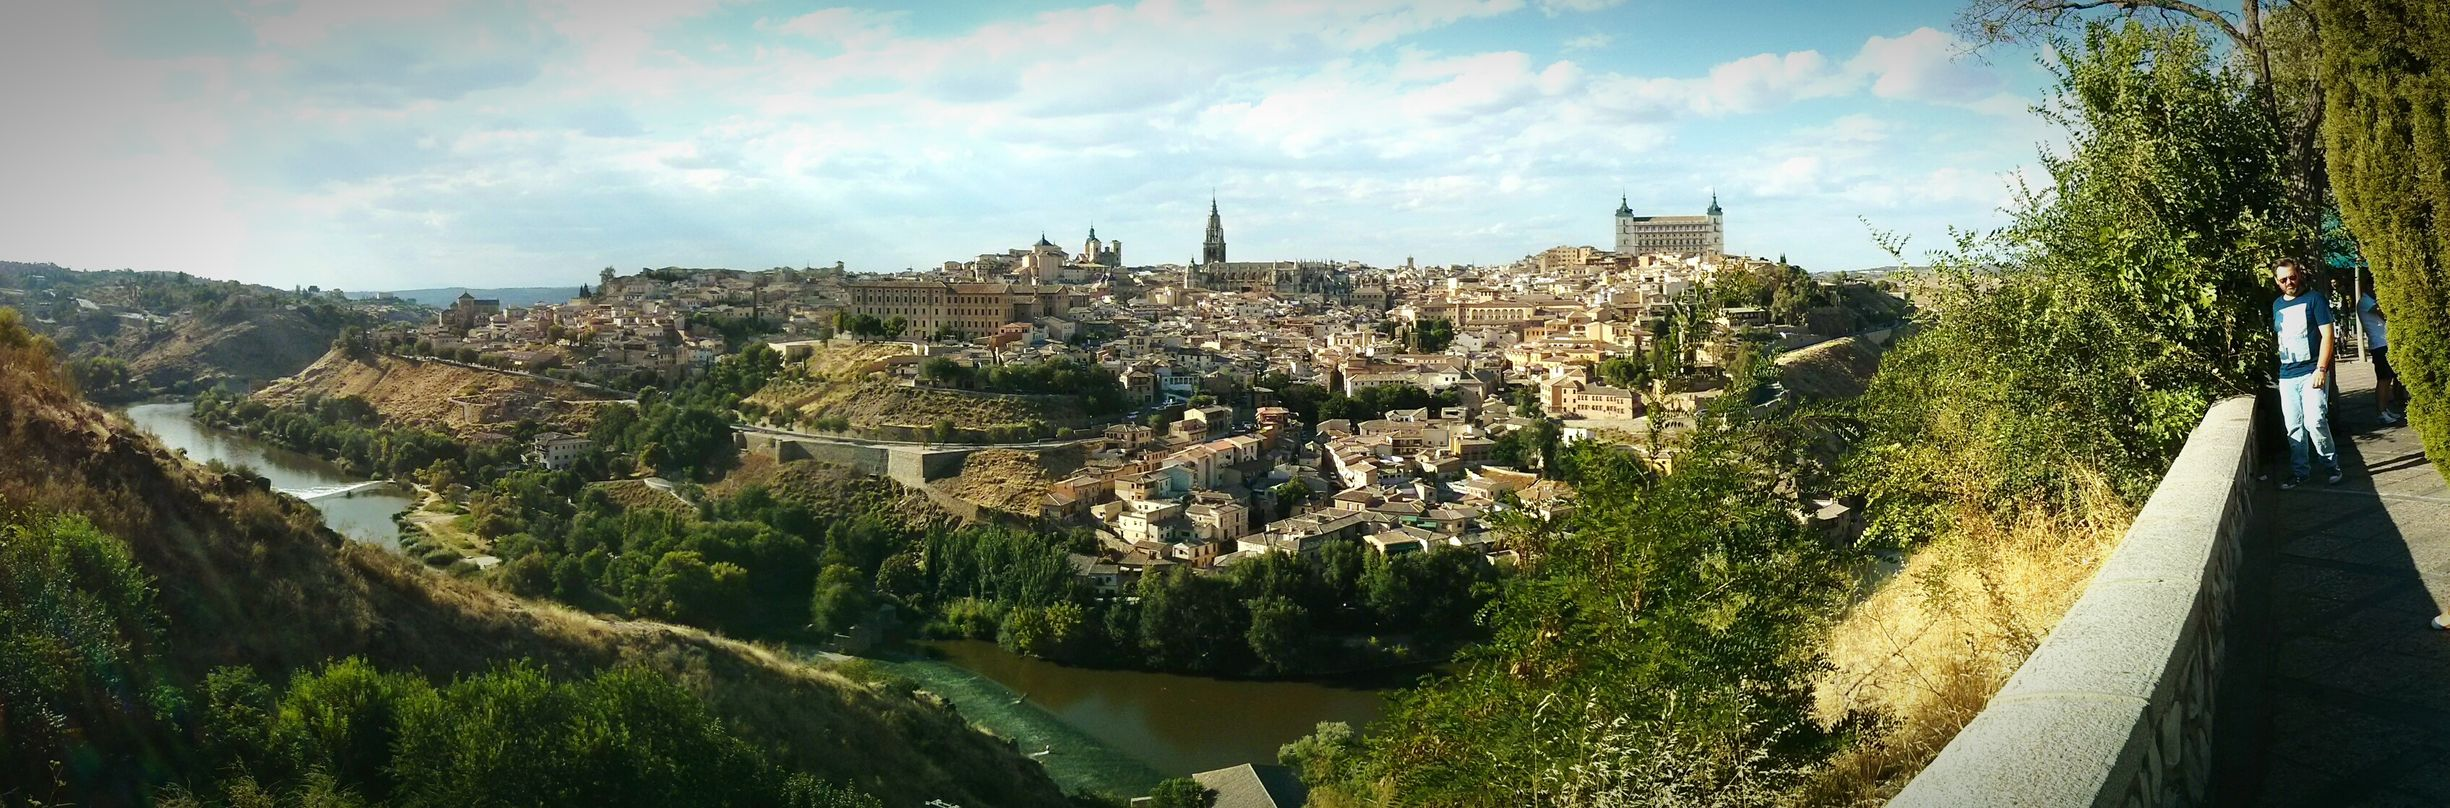 Proud to be born in such a beautiful and historical city. The city of the three cultures, where Jews, Christians and Muslims lived together circa 1000 years ago. Toledo Spain Home CastillaLaMancha Gastronomía Gastronomy Tourism Medievalcity